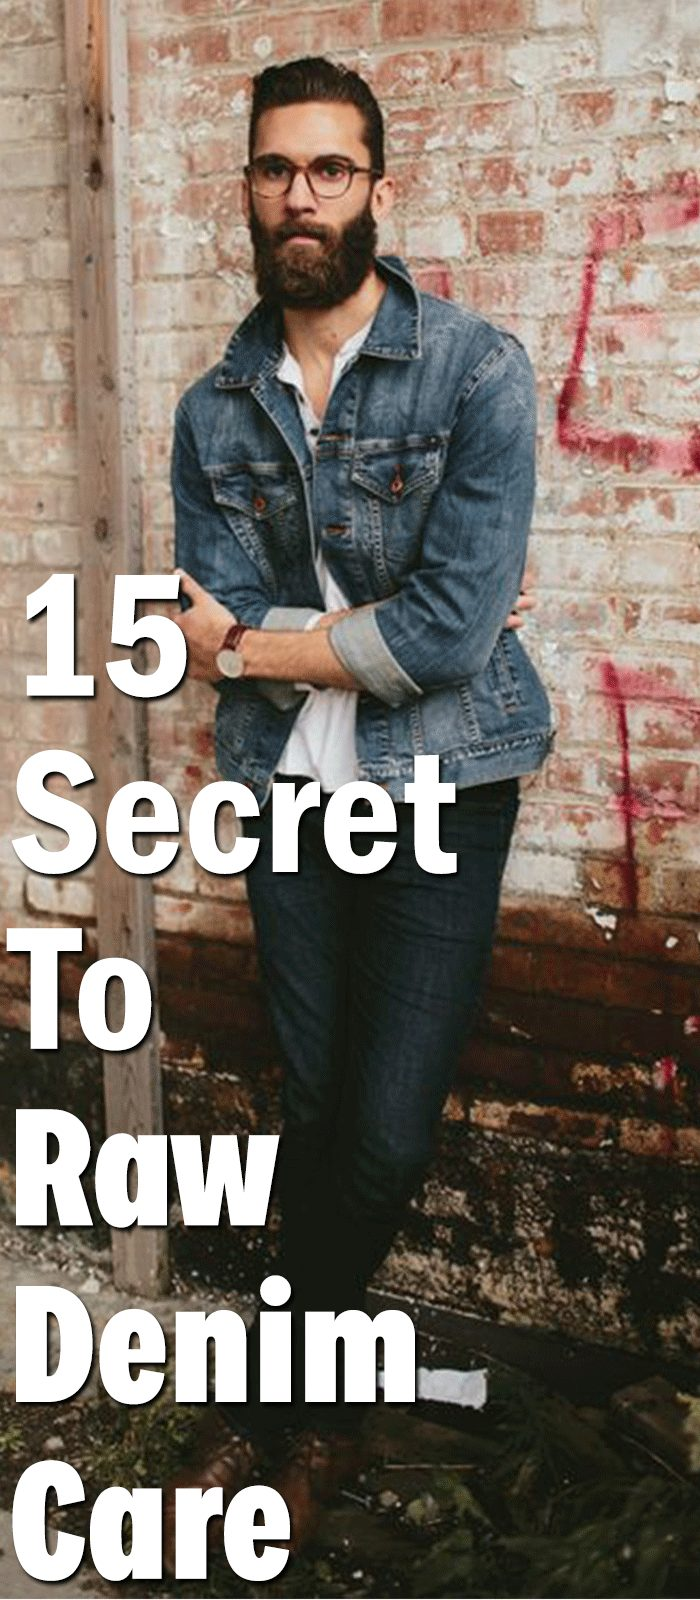 15 Secret To Raw Denim Care!